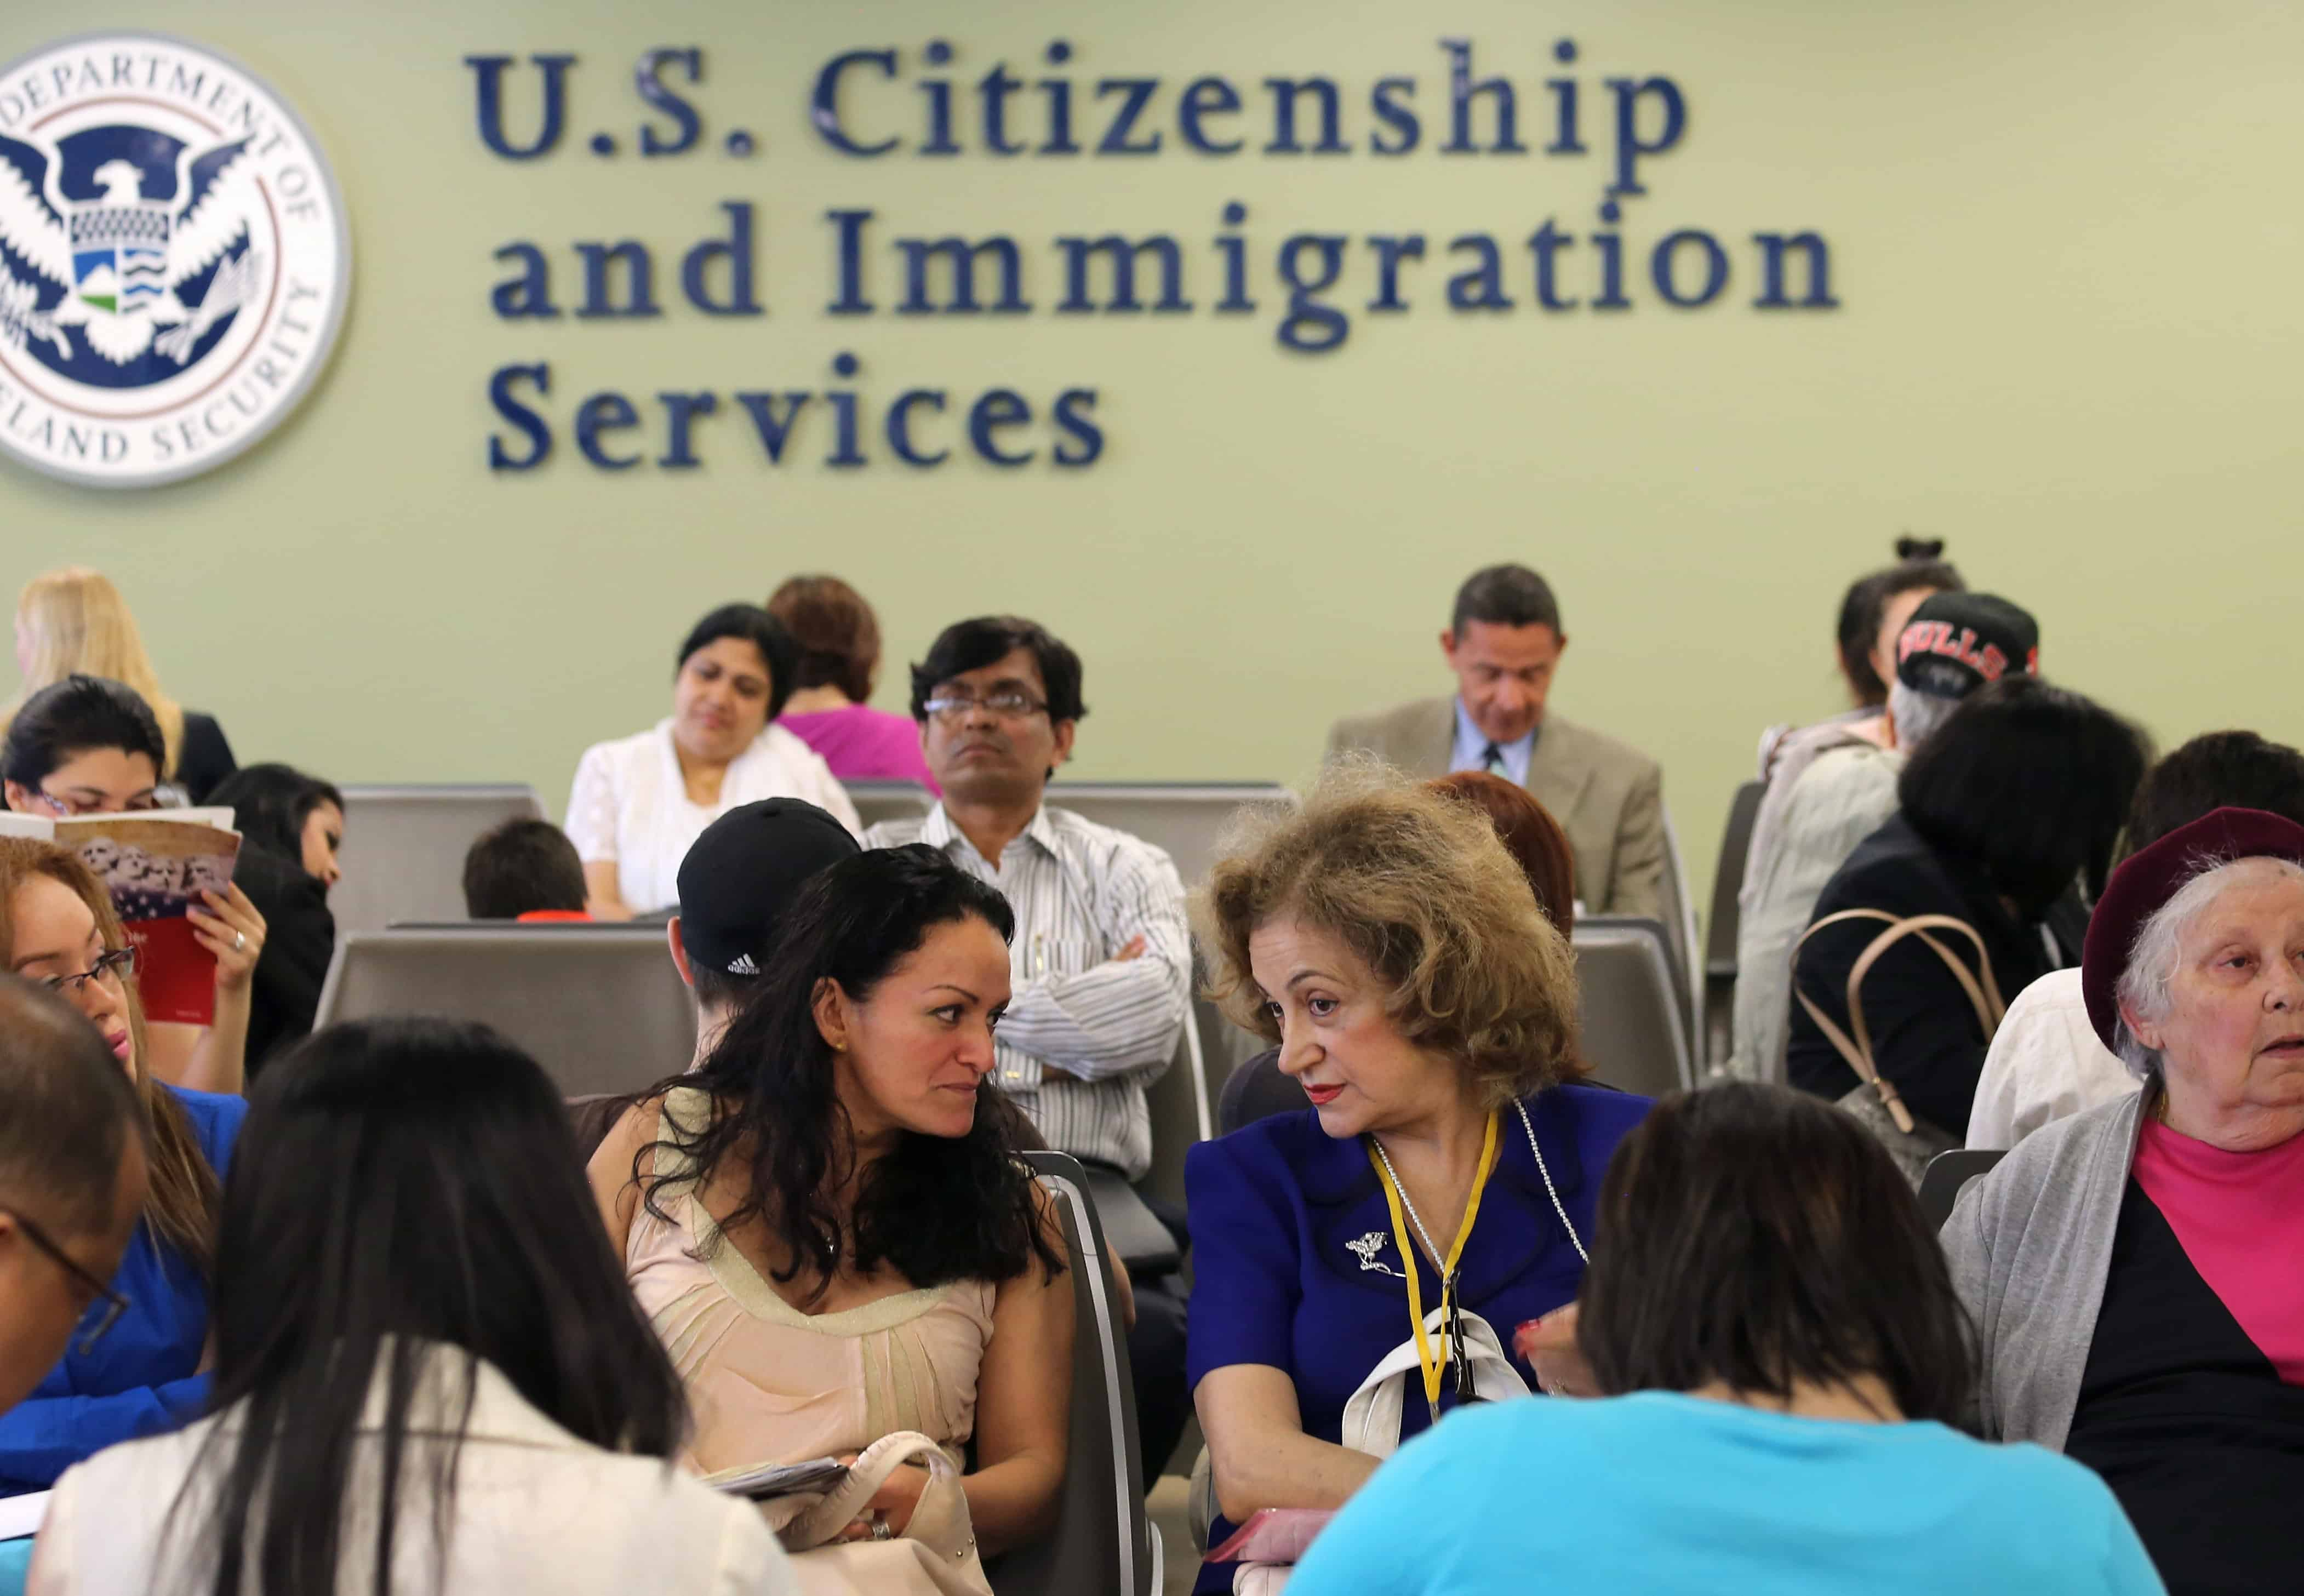 Immigrants await their turn for green card and citizenship interviews at the U.S. Citizenship and Immigration Services office in Queens, NY on May 30, 2013.